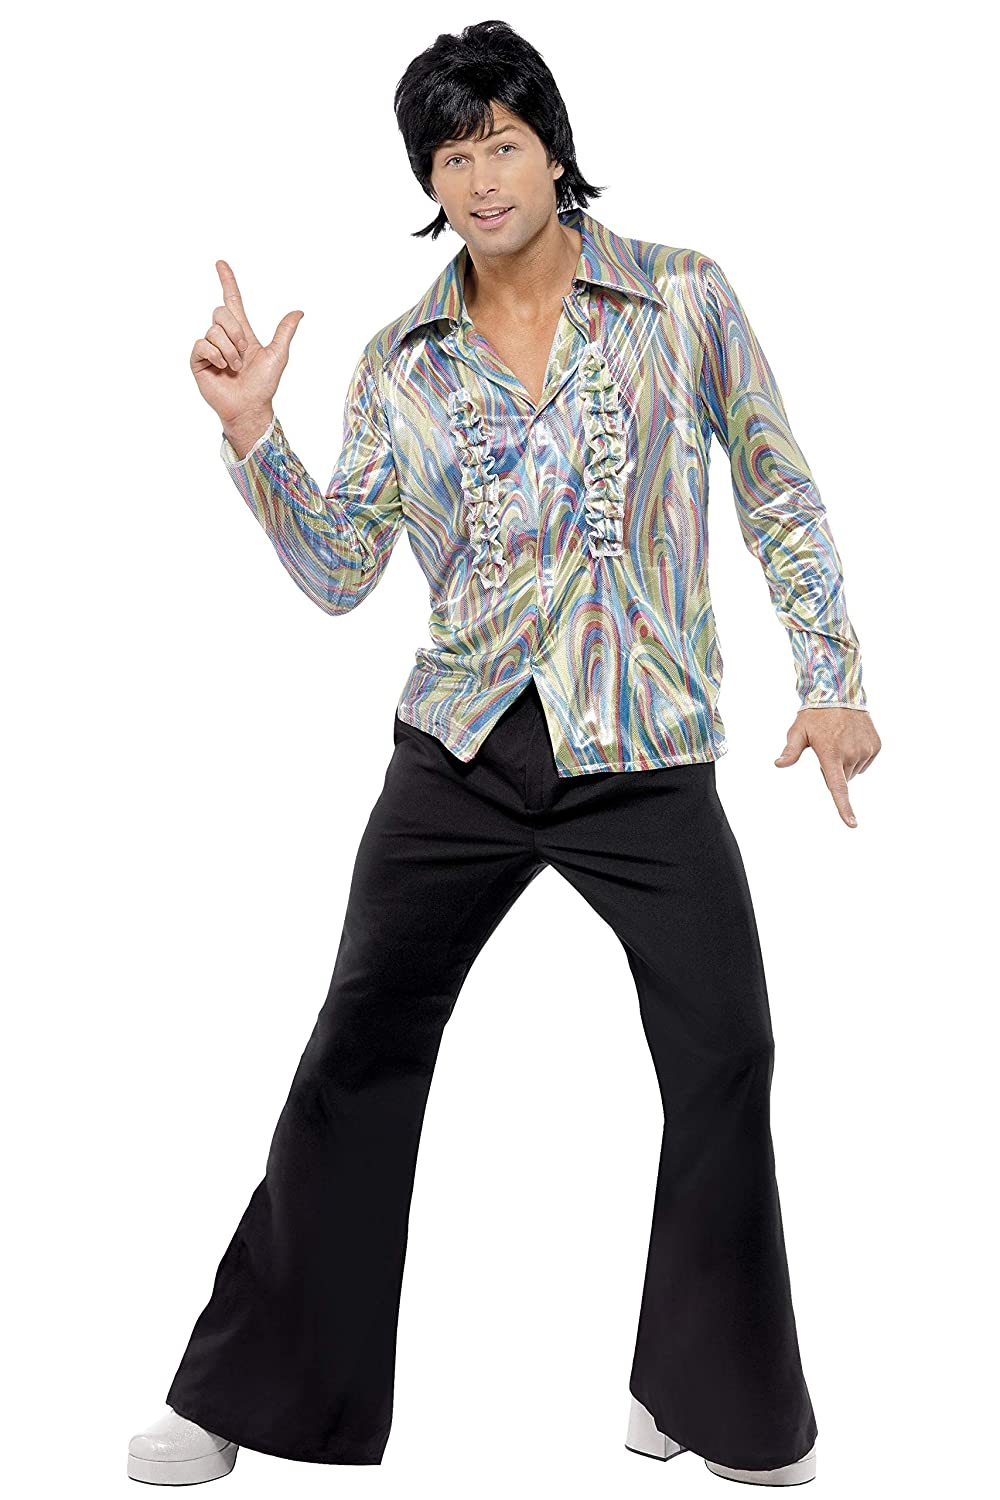 70s Costumes: Disco Costumes, Hippie Outfits Smiffys Mens 70S Retro Costume with Psychedelic Pattern Shirt and Flares $22.78 AT vintagedancer.com